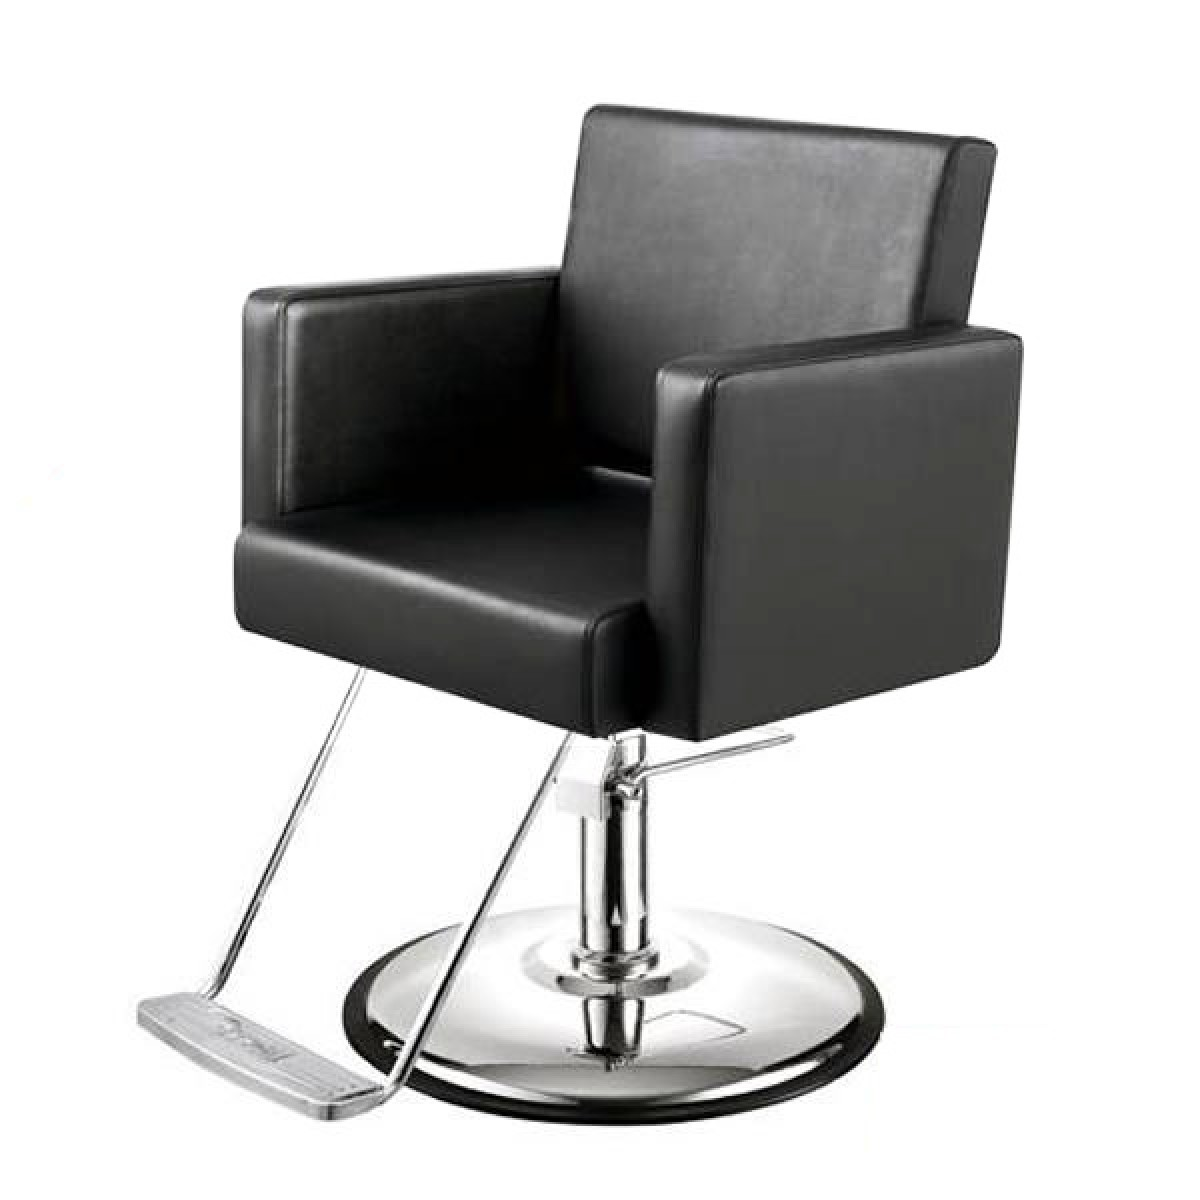 Quot Canon Quot Styling Chair Salon Chairs Salon Equipment